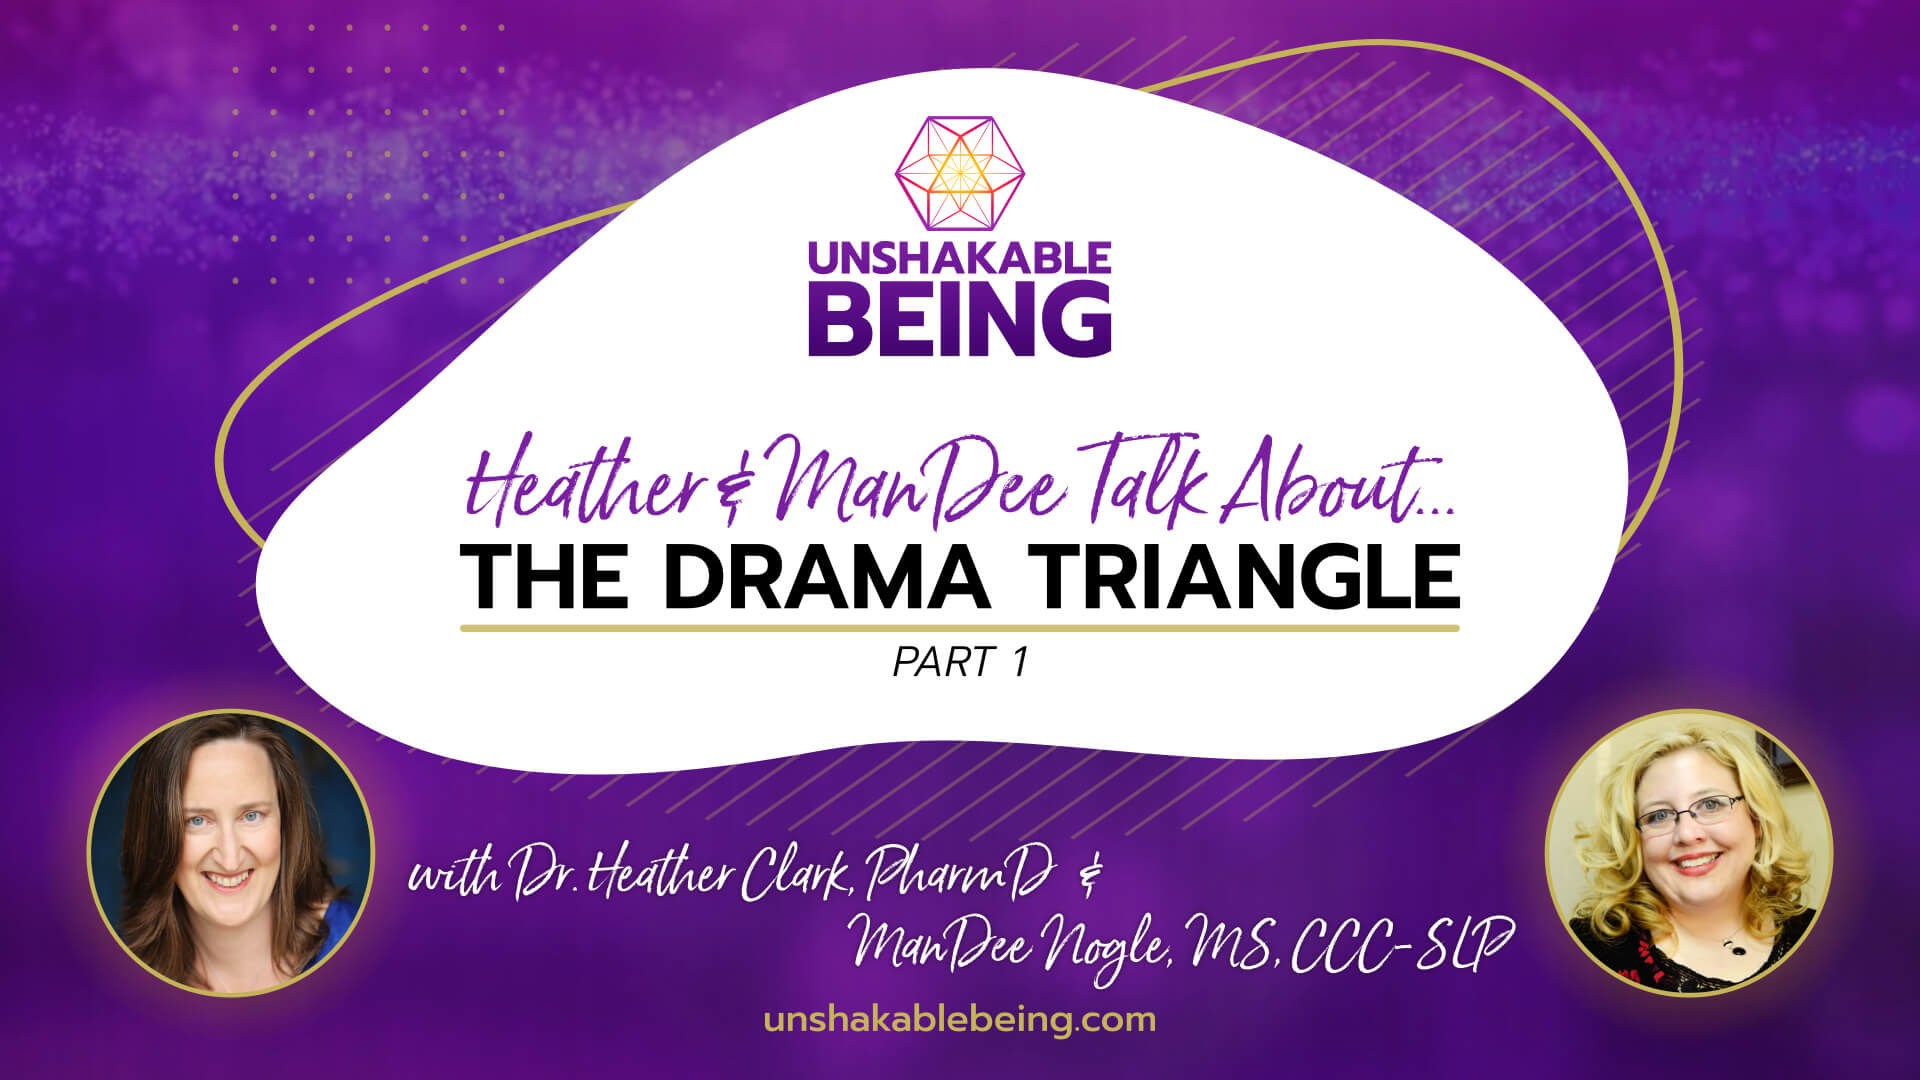 The Drama Triangle (Part 1) on Heather & ManDee Talk About…